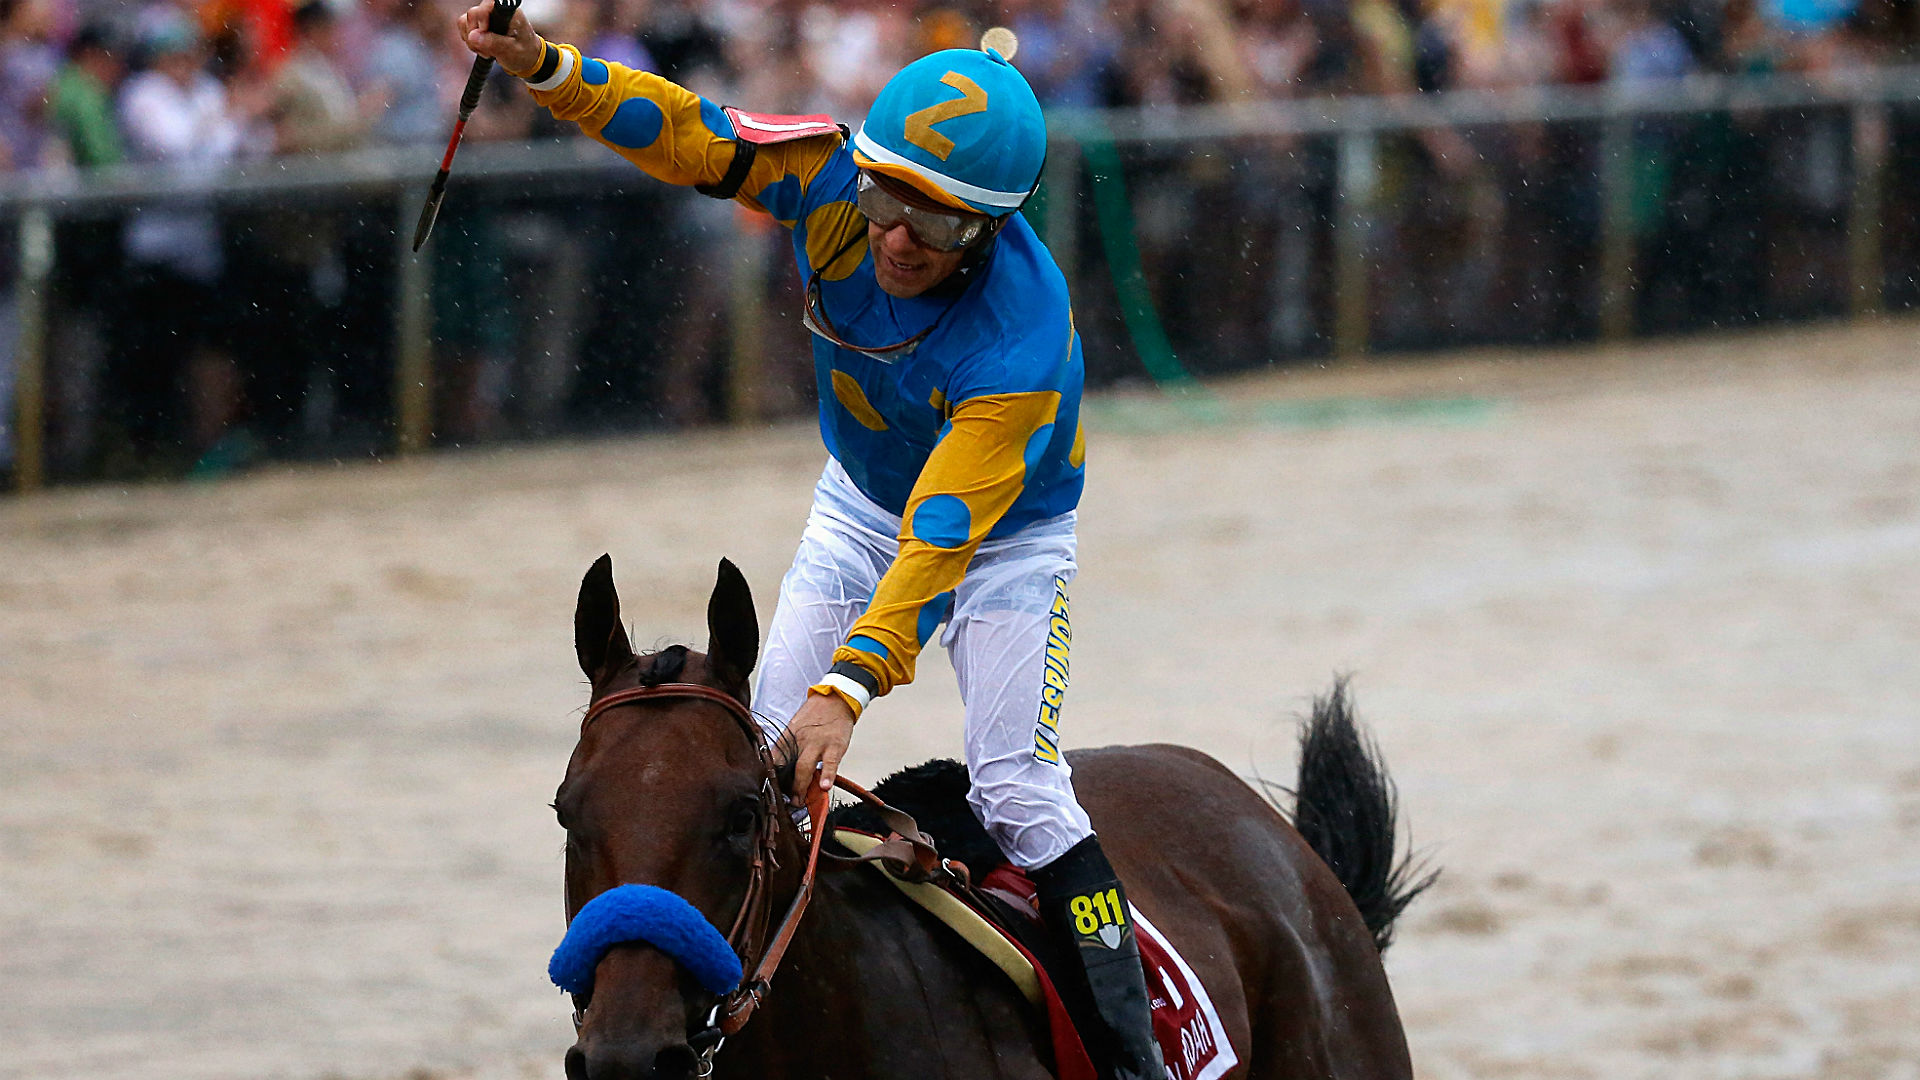 When Triple Crown dreams are dashed, all eyes turn to the jockey